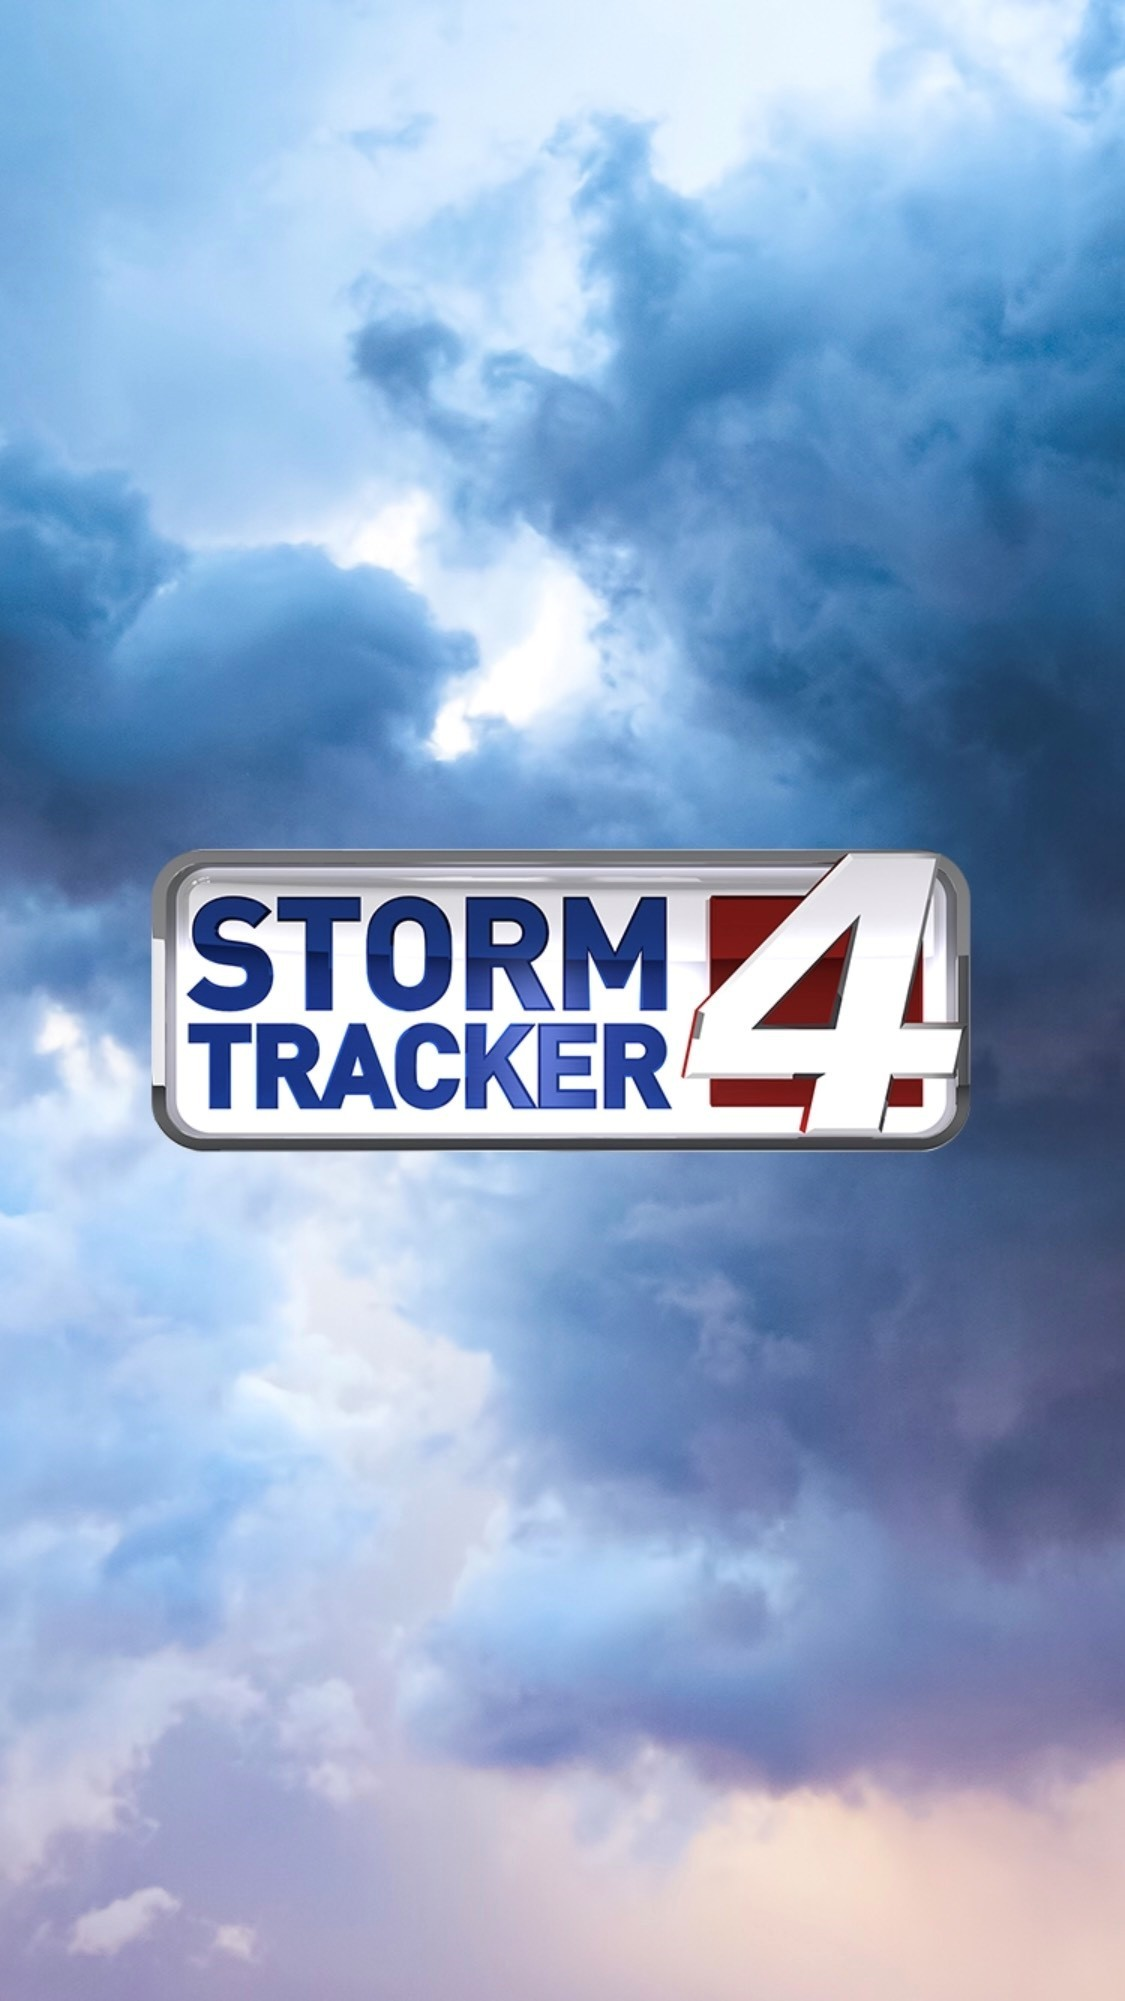 Download The Stormtracker 4 Weather App For The Latest Hurricane Information Kveo Tv